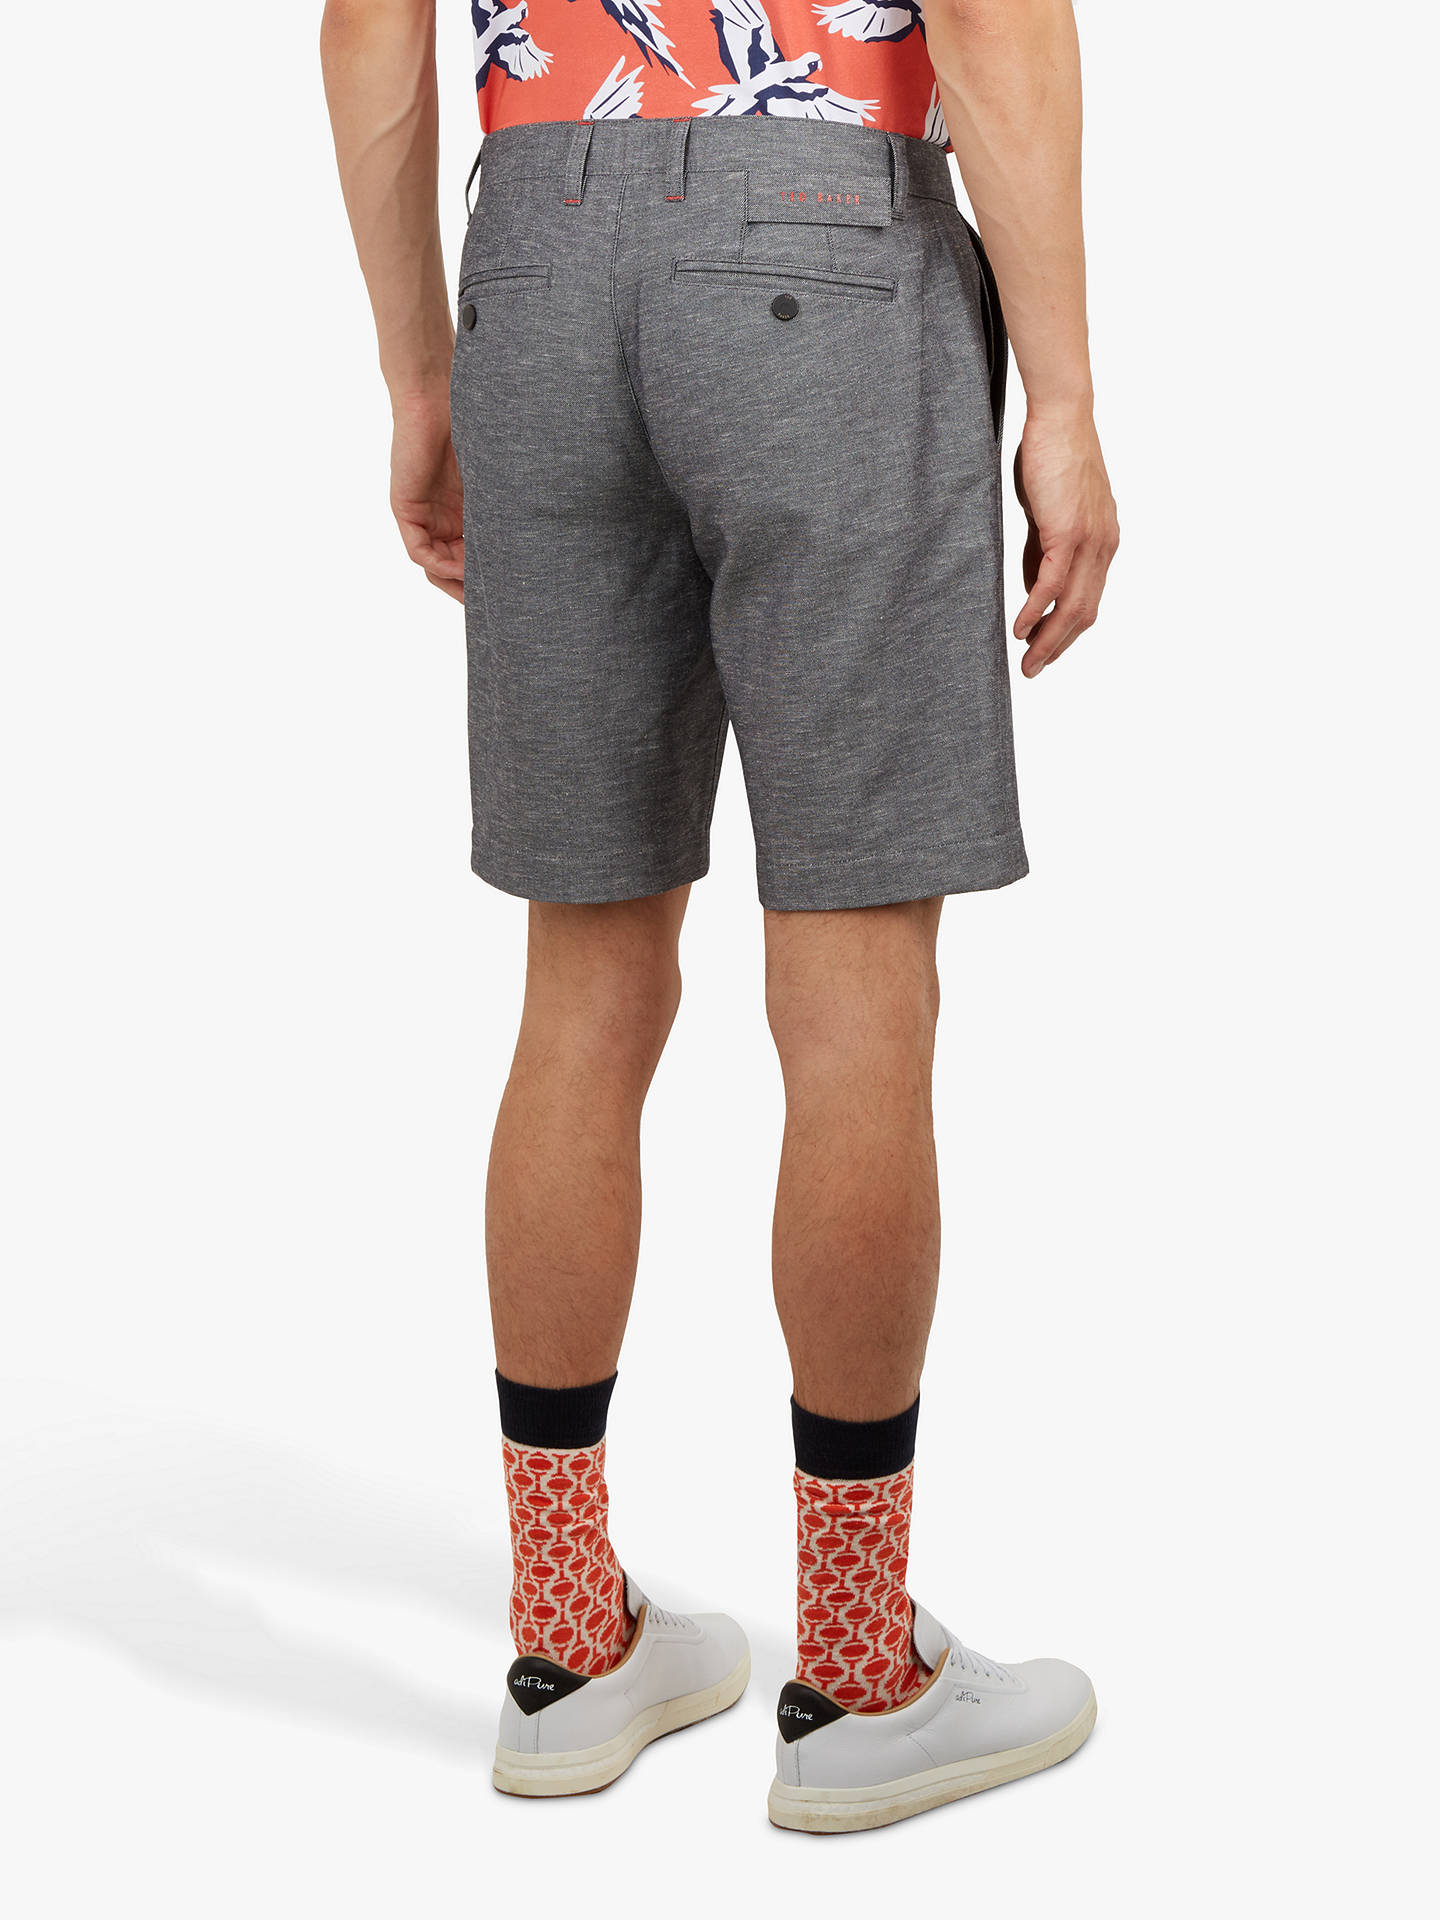 BuyTed Baker Tigur Golf Shorts, Blue Navy, 30R Online at johnlewis.com